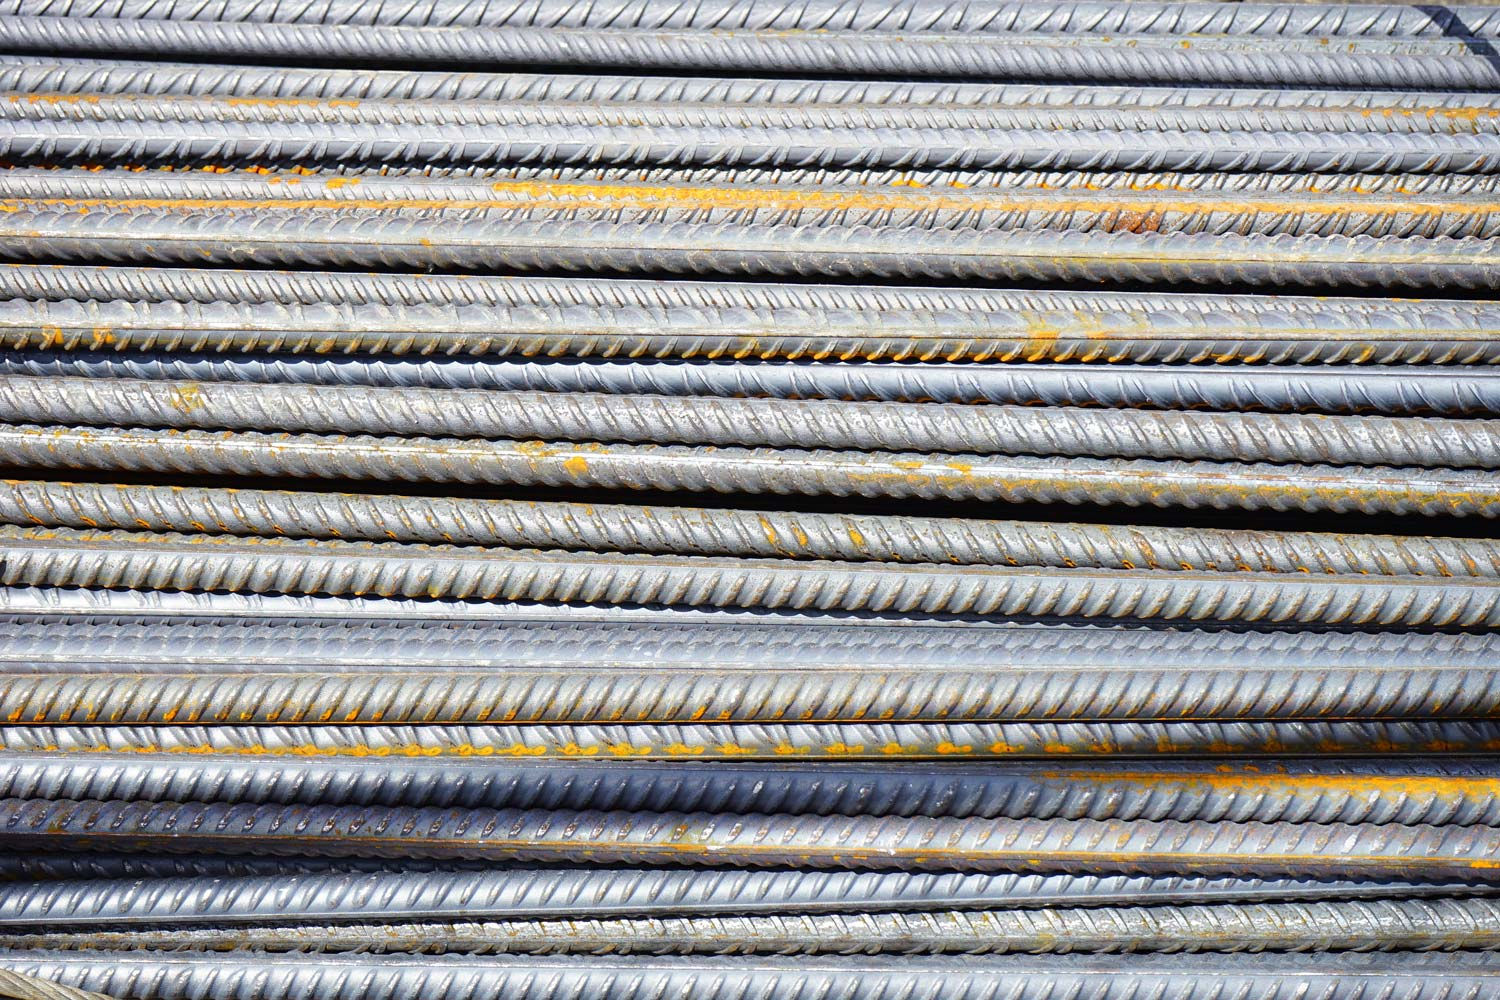 What should you do with your excess steel?